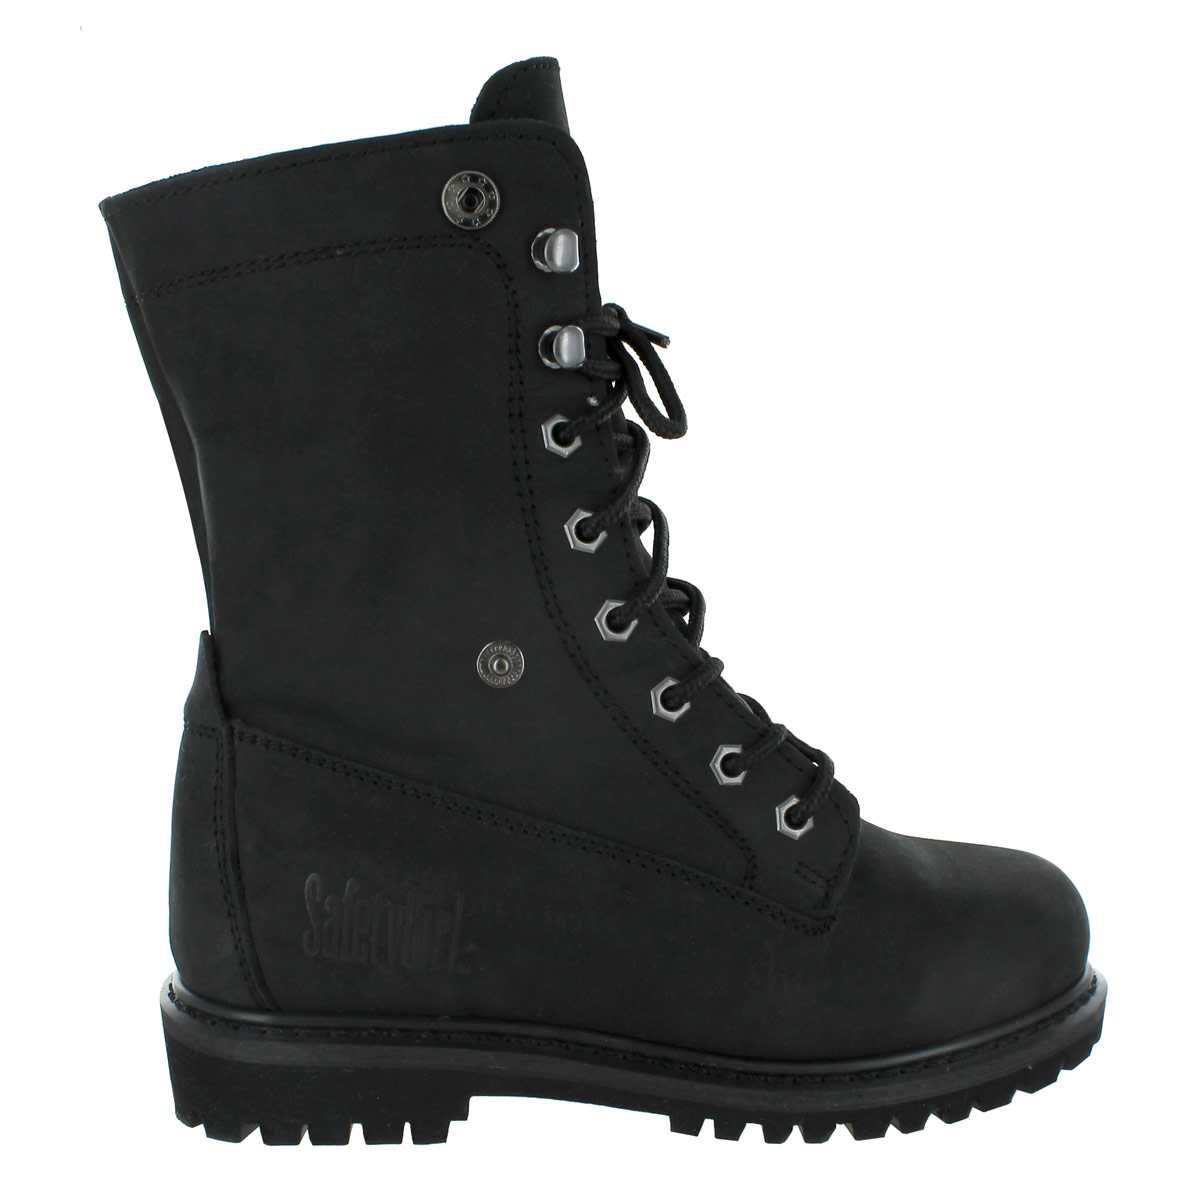 Safety Girl GS008-BLK-ST-11M Madison Fold-Down Work Boot Black English Leather Capacity Black Steel Toe 11M Volume 11M